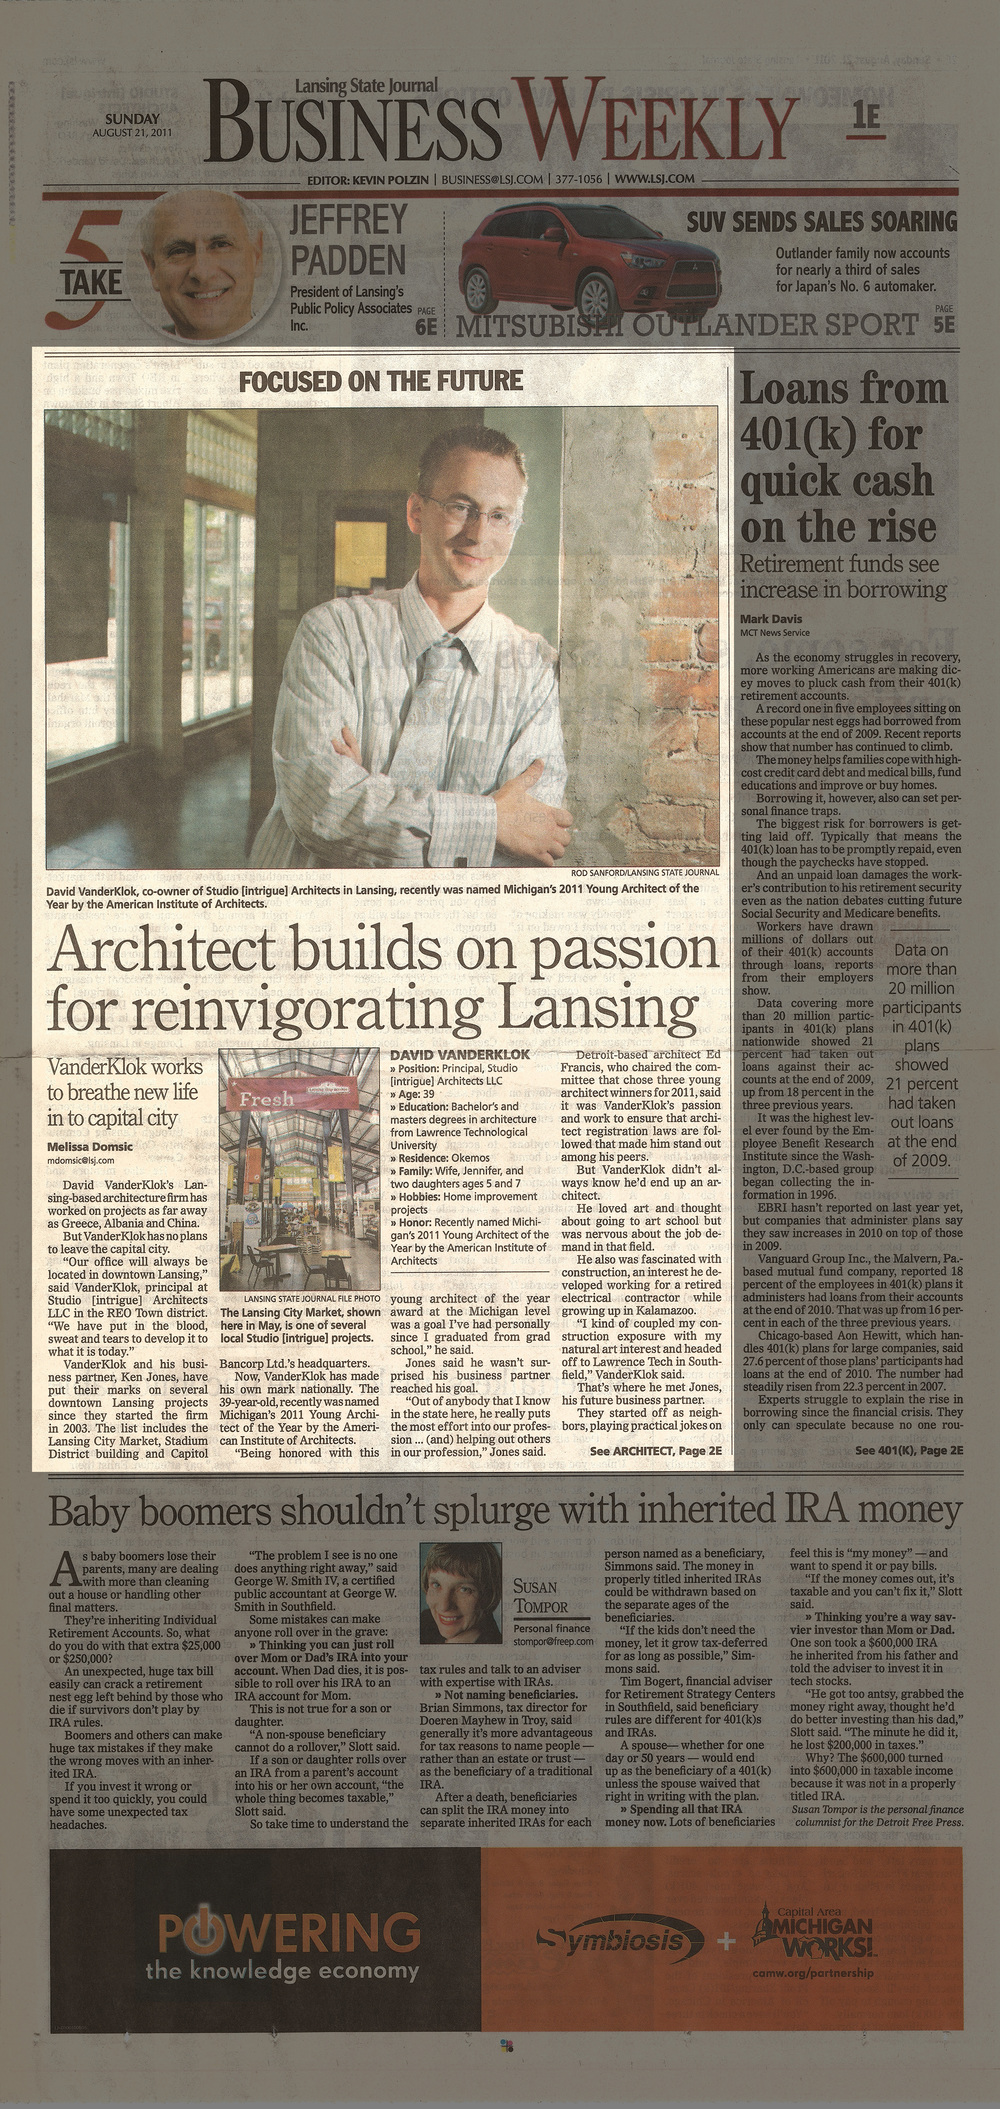 Architect Builds Passion for reinvigorating Lansing.jpg